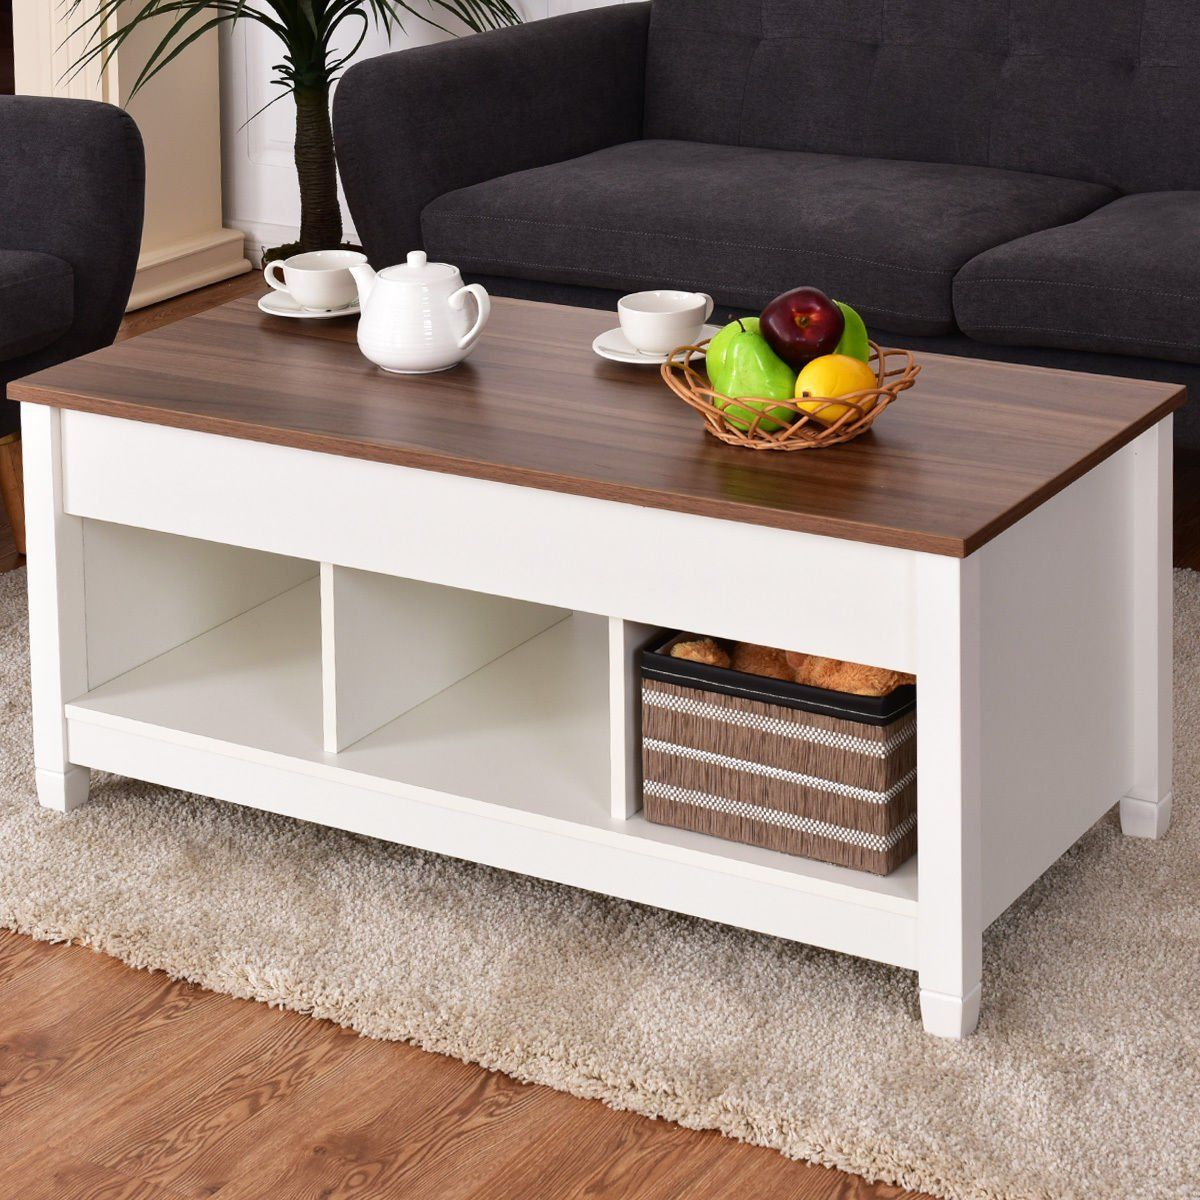 Amazon com tangkula lift top coffee table modern living room furniture with hidden compartment and lift tabletop white home kitchen